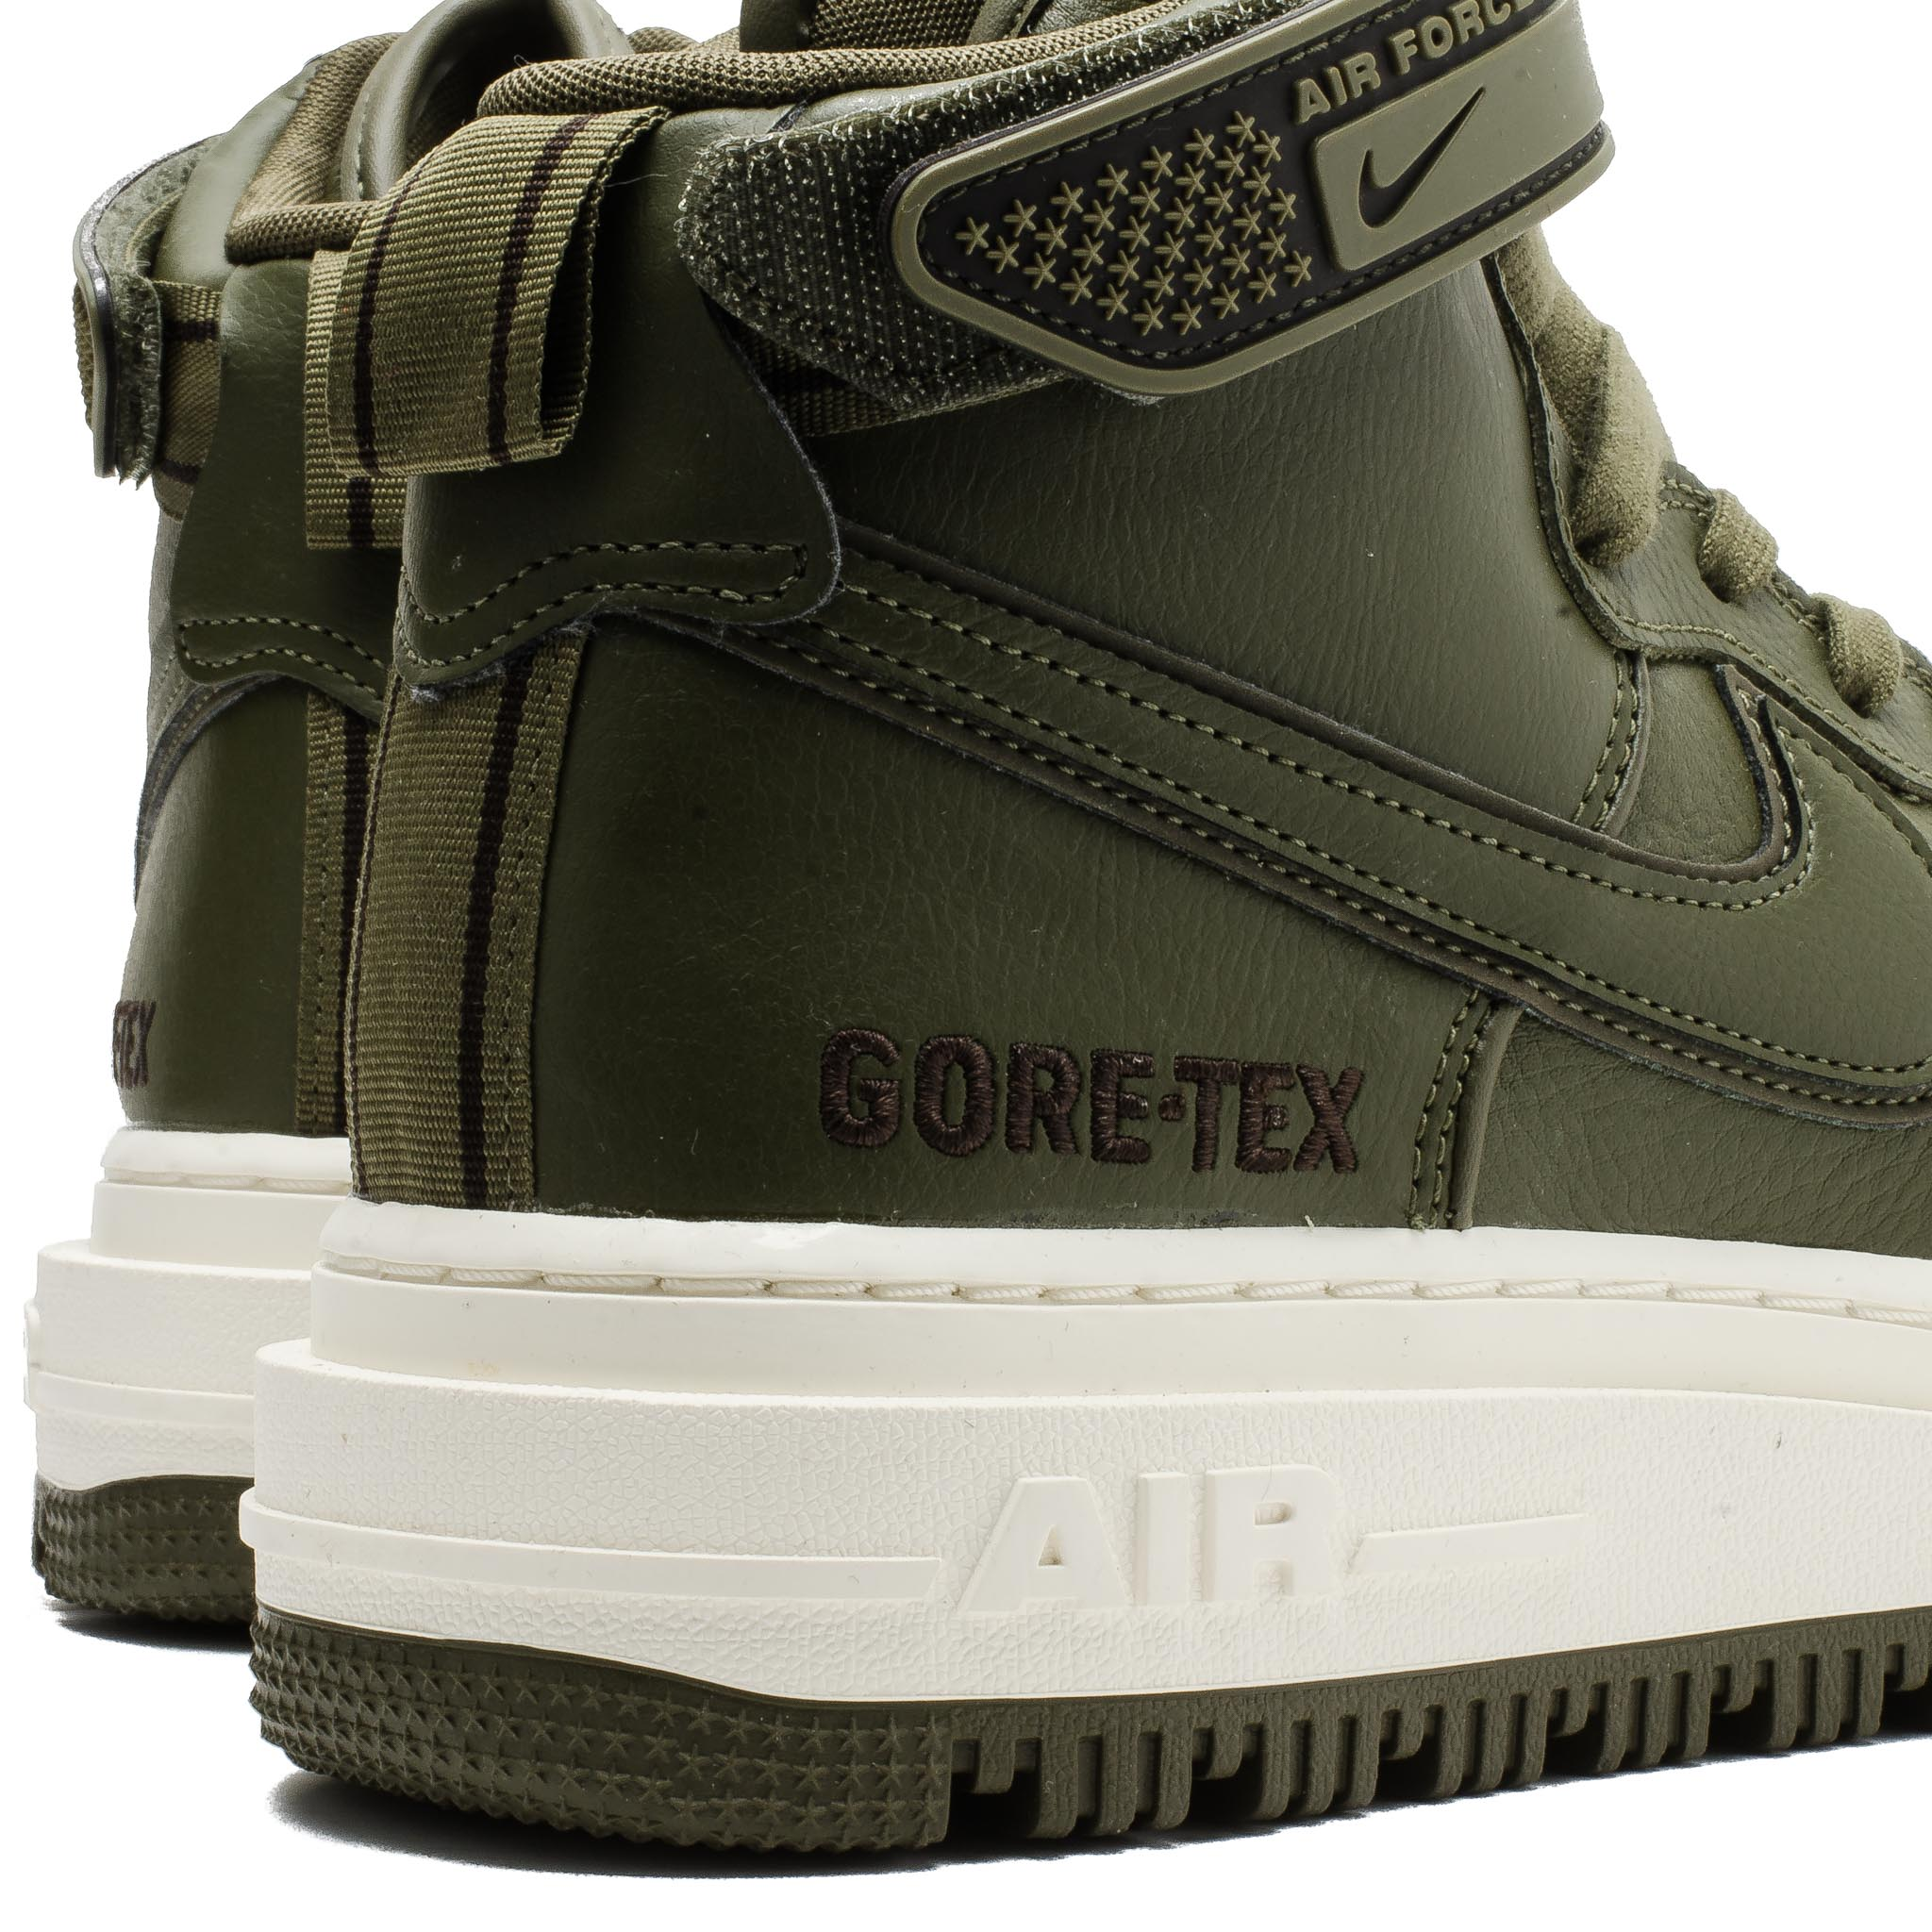 Air Force 1 GTX Boot CT2815-201 Medium Olive